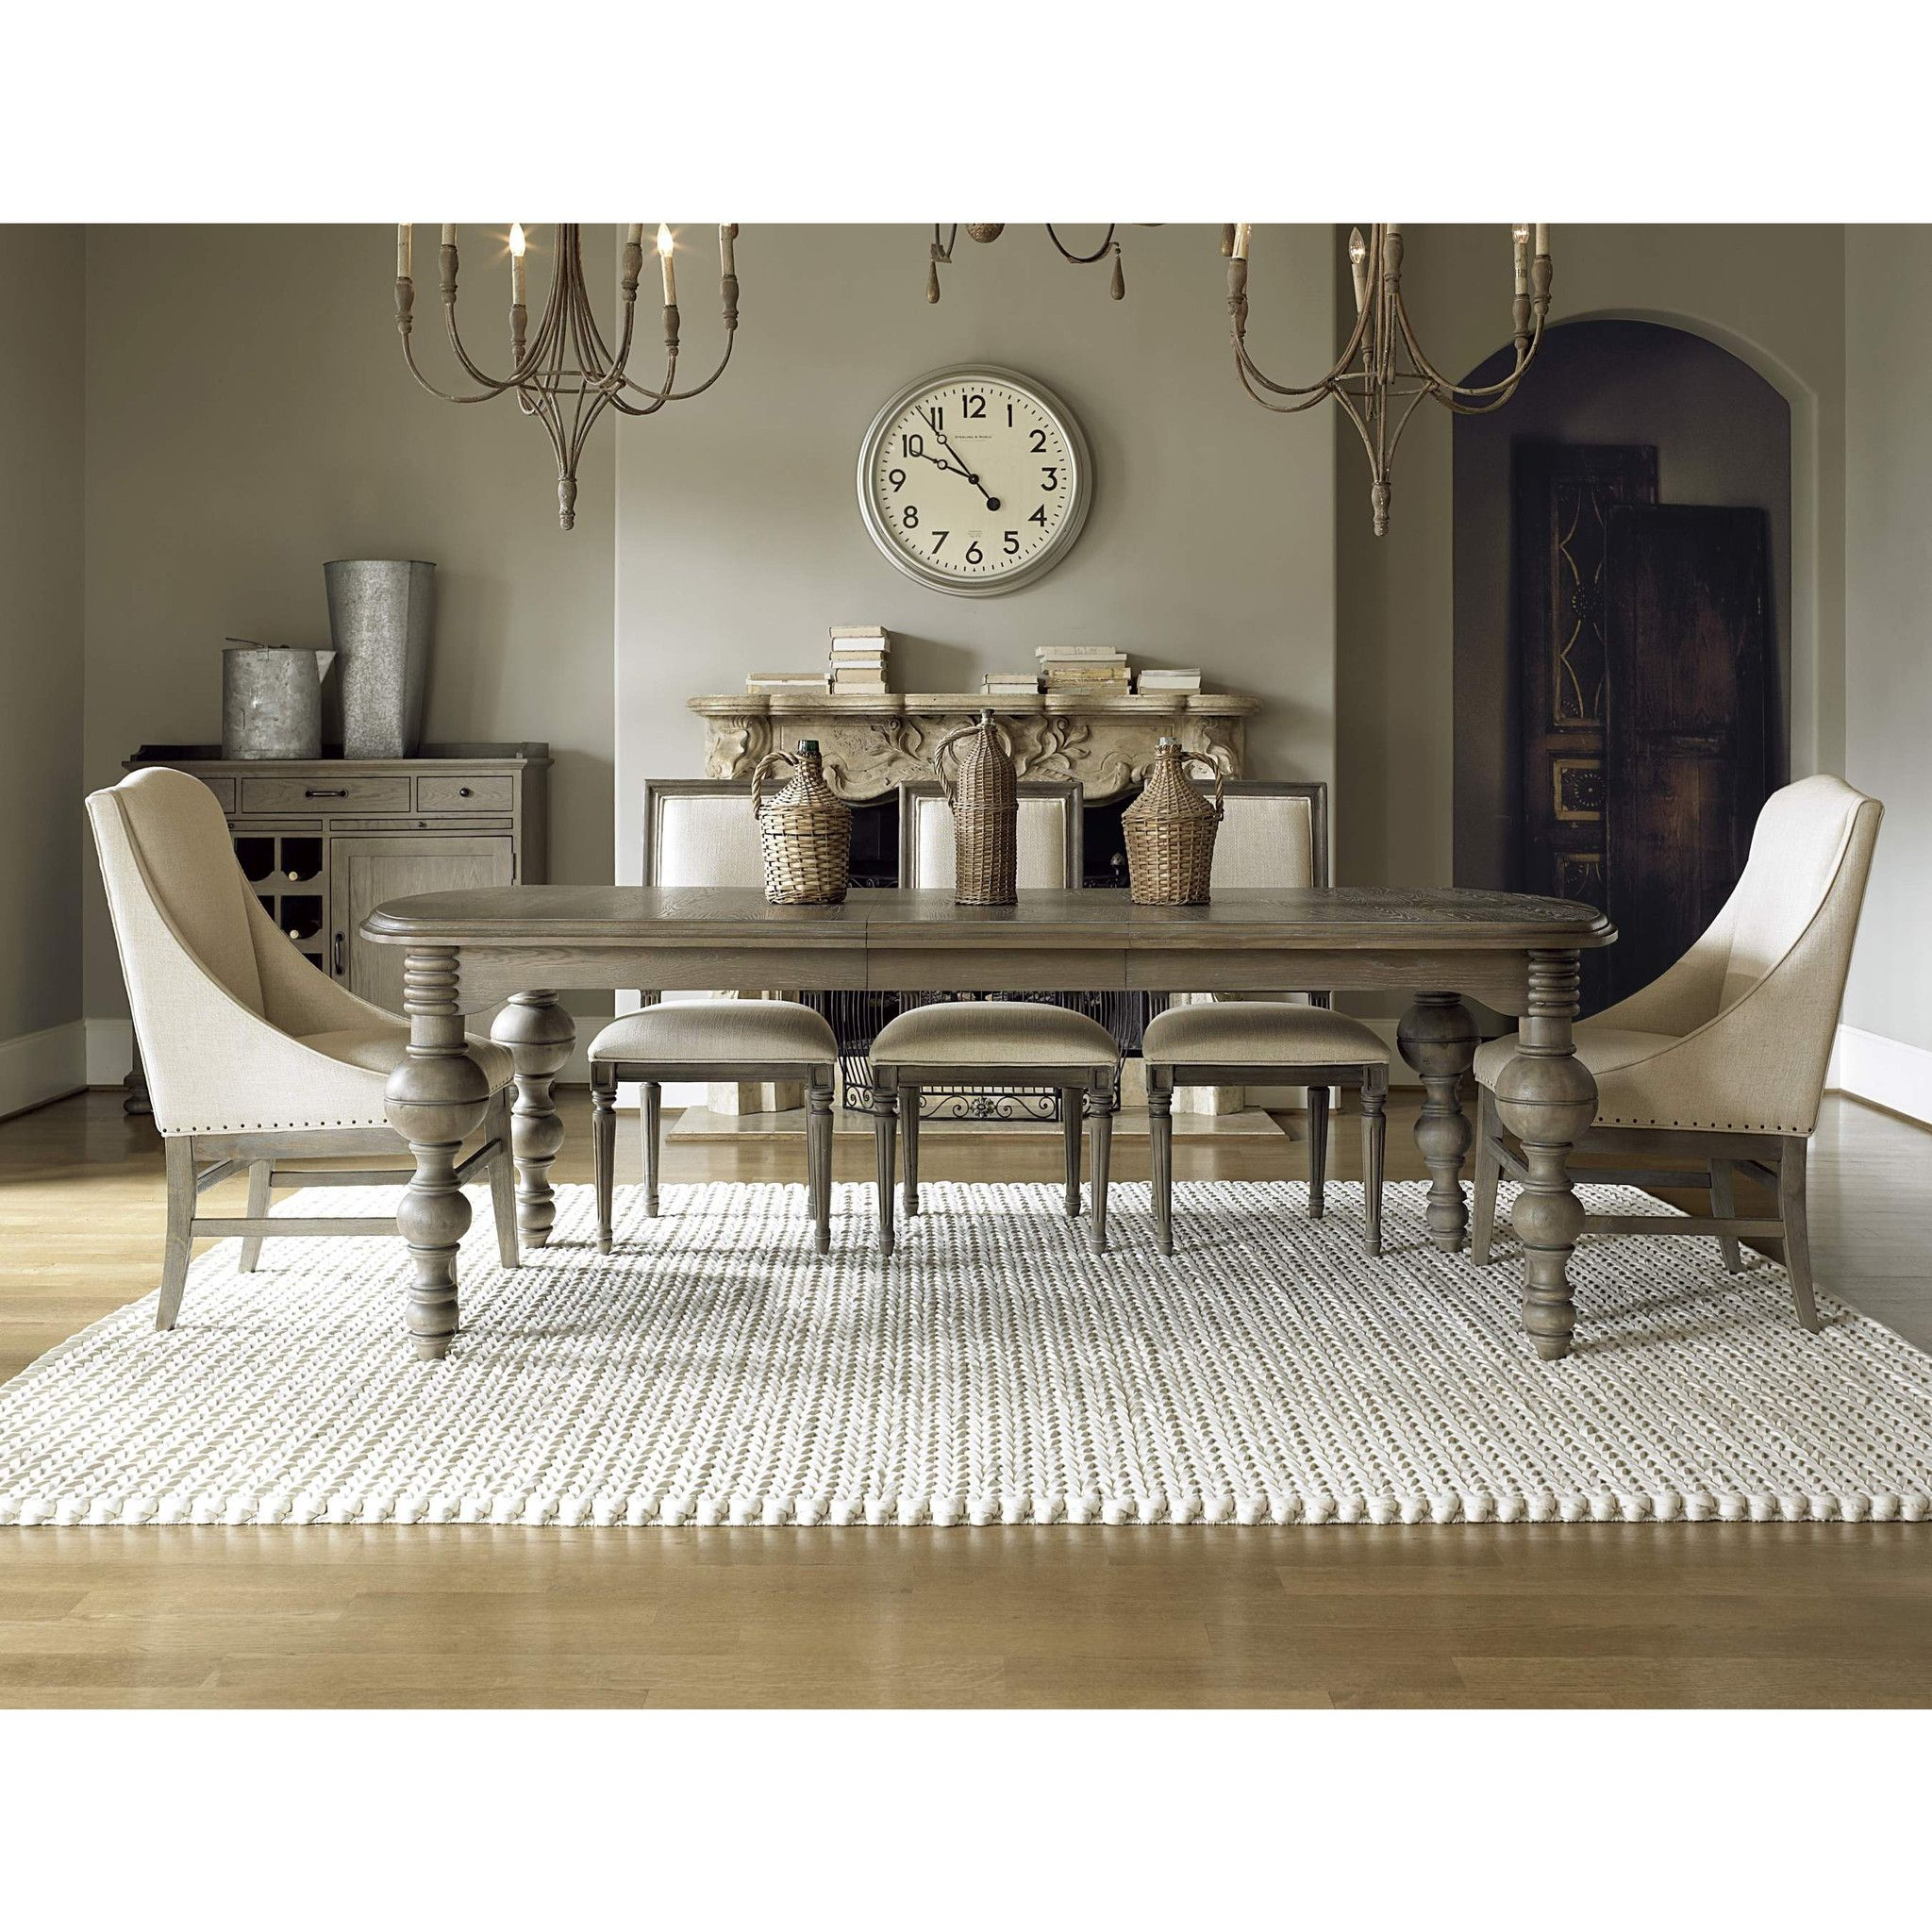 Kitchen Tables Ottawa Berkeley3 gathering table 120leaf leaves and house bartley dining table sku the bartley extension table features fresh finishes and distinctive detailse upper room home furnishings ottawas premier home workwithnaturefo